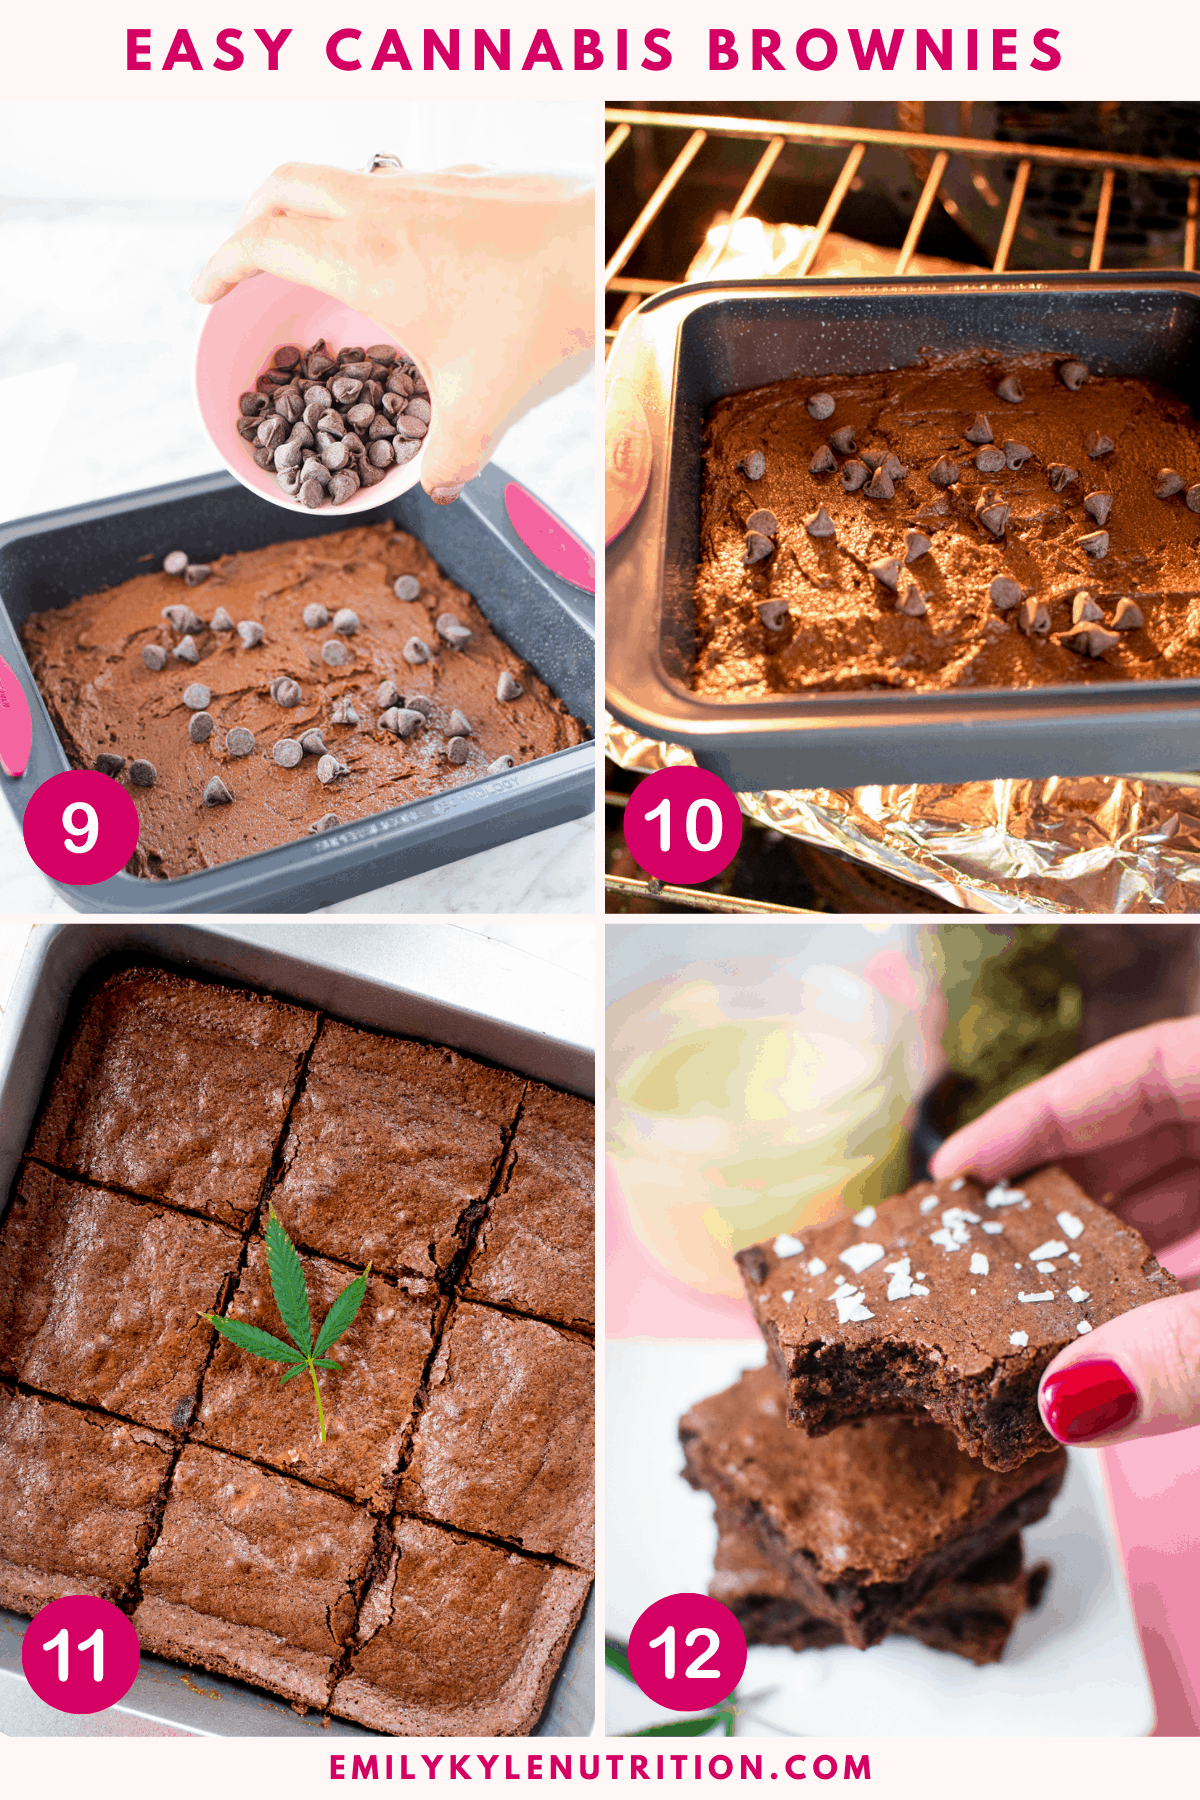 A 4 step collage showing the final 4 images of how to make cannabis brownies including adding chocolate chips, baking in the oven, cutting into squares, and enjoying.